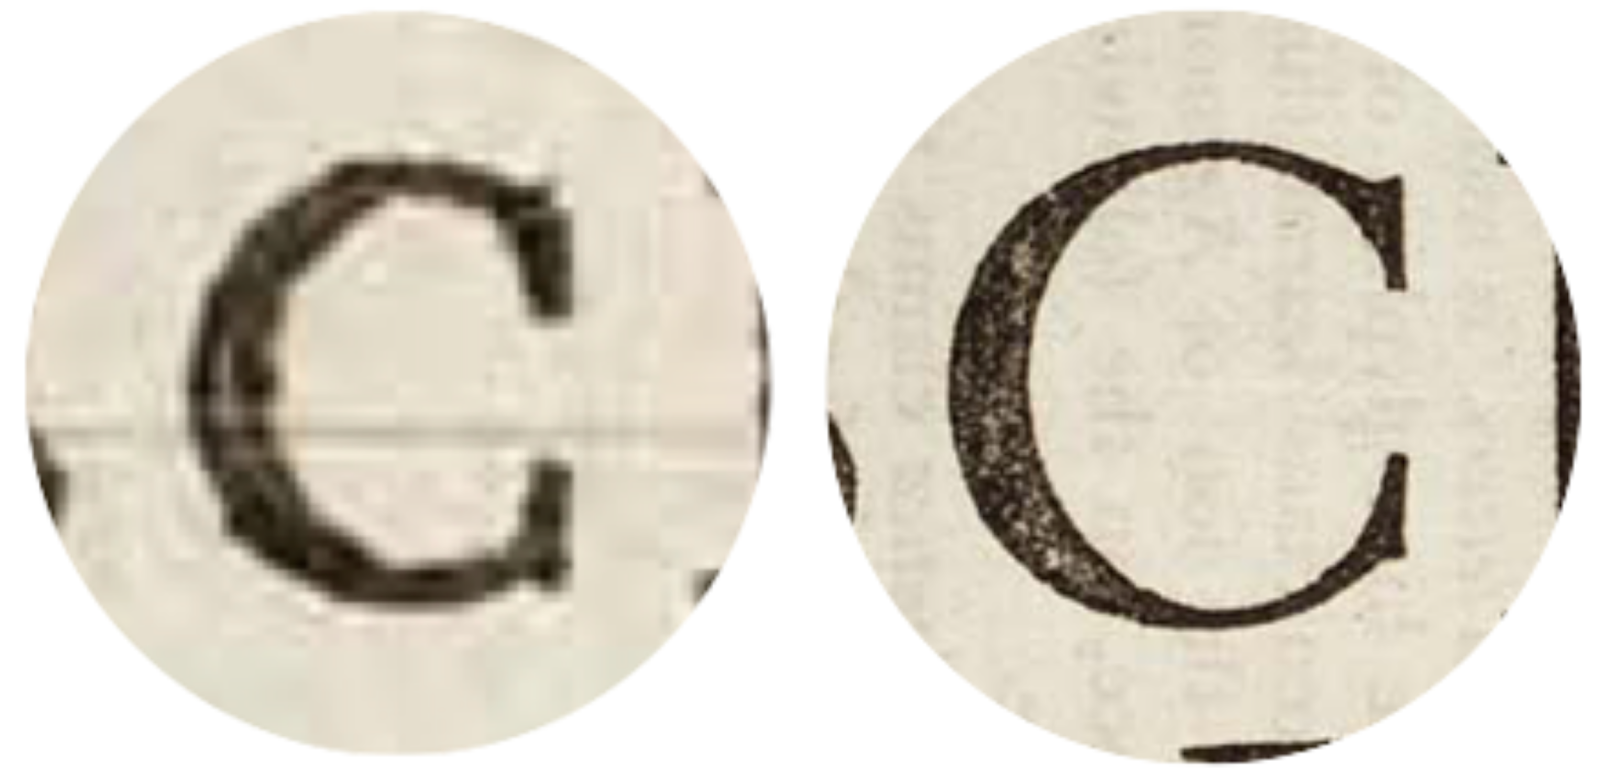 Image showing the difference in physical stroke weight between 6pt and 72pt Garamond from the early 18th century